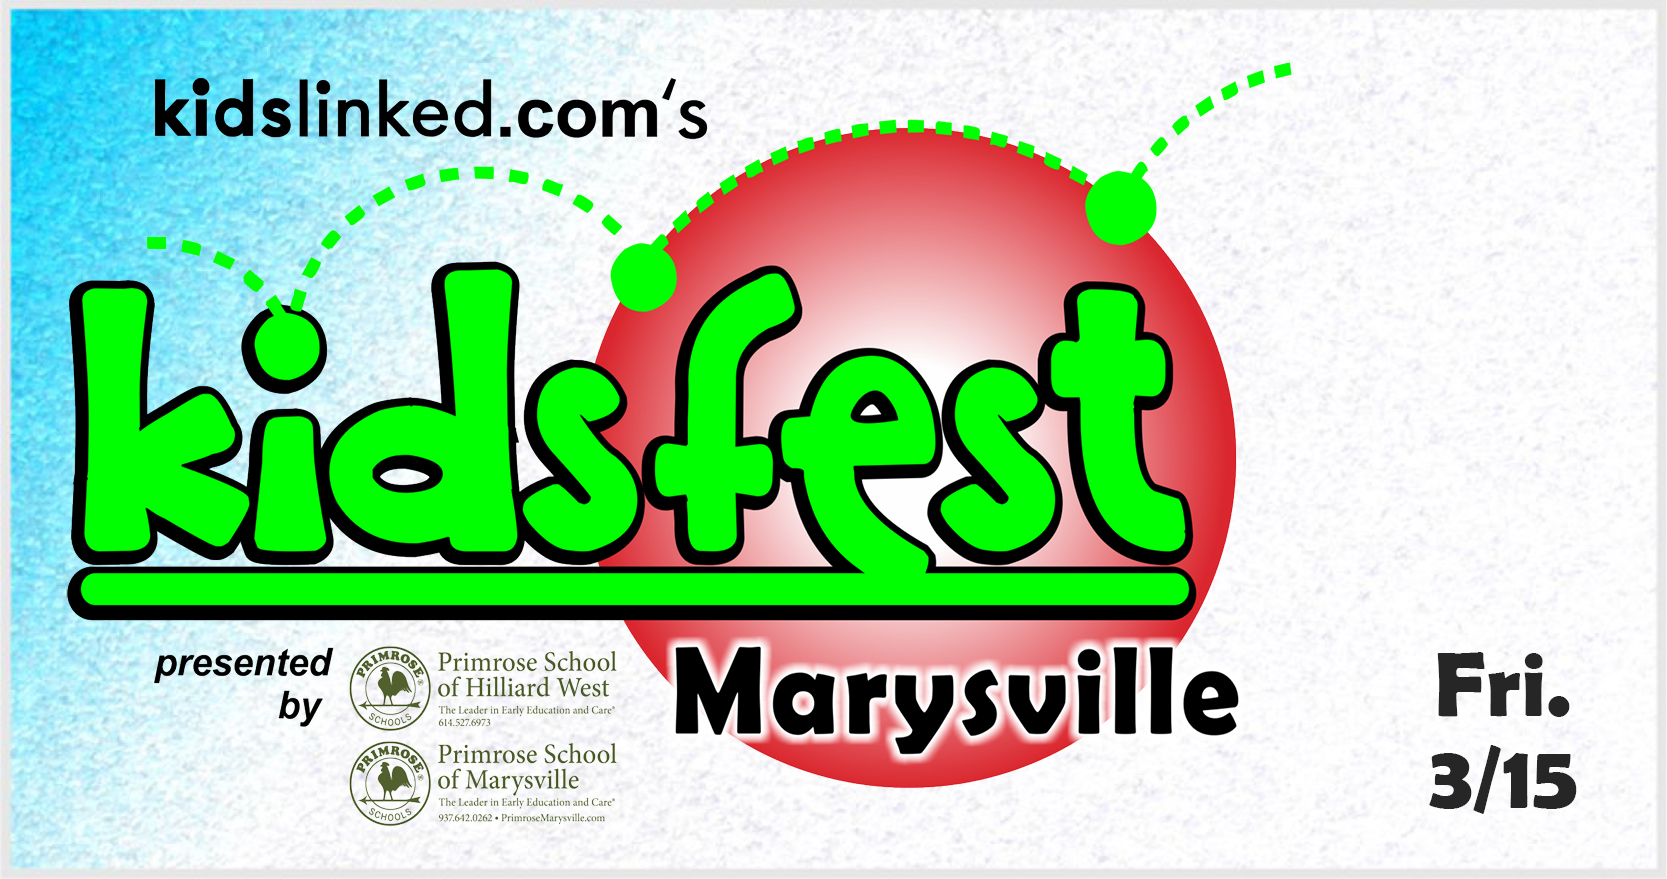 Marysville KidsFest 2019 presented by Primrose School of Hilliard West and Primrose School of Marysville